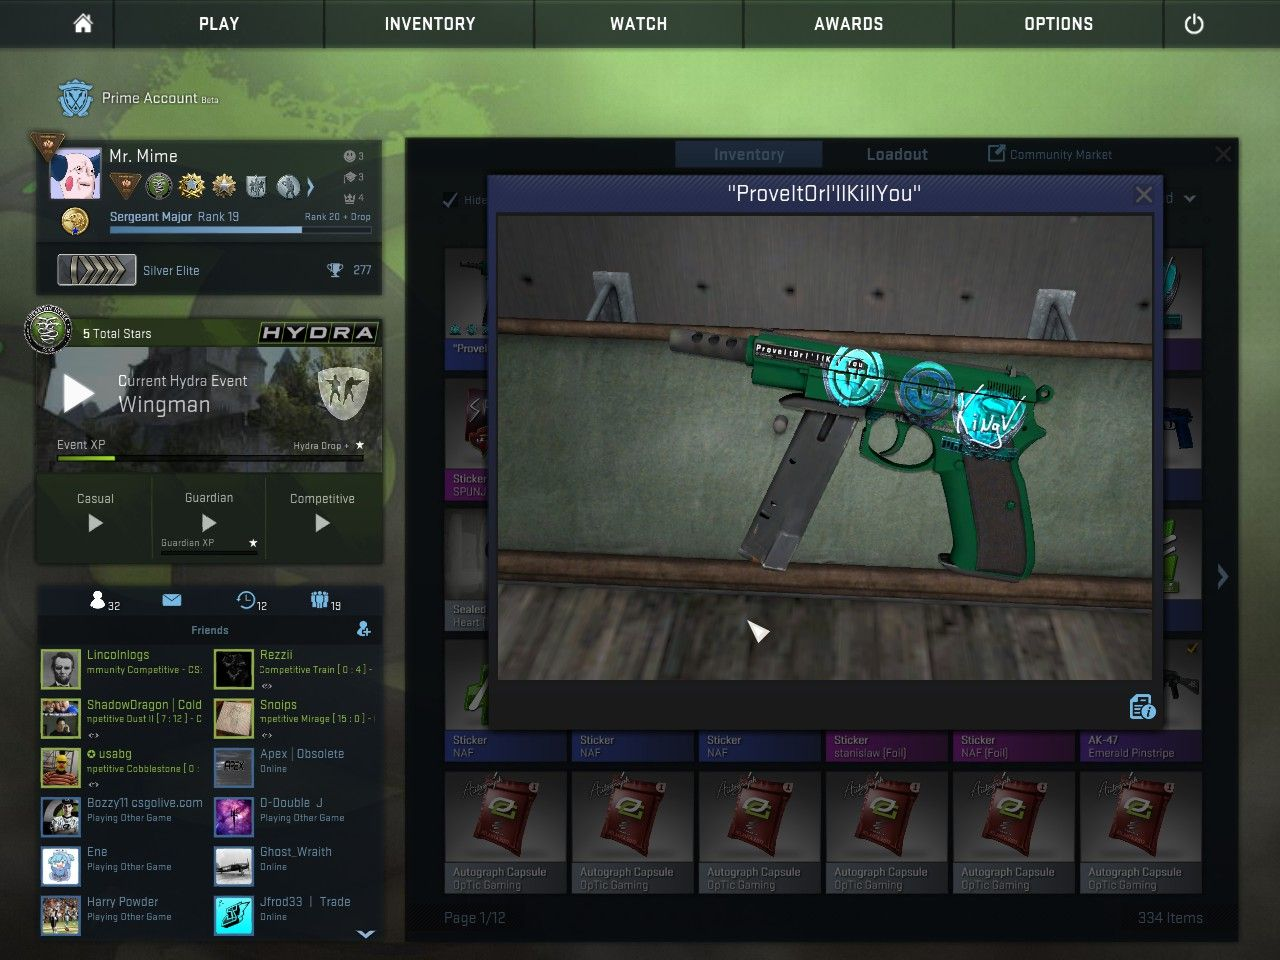 Can i put Reddit memes on a gun? #games #globaloffensive